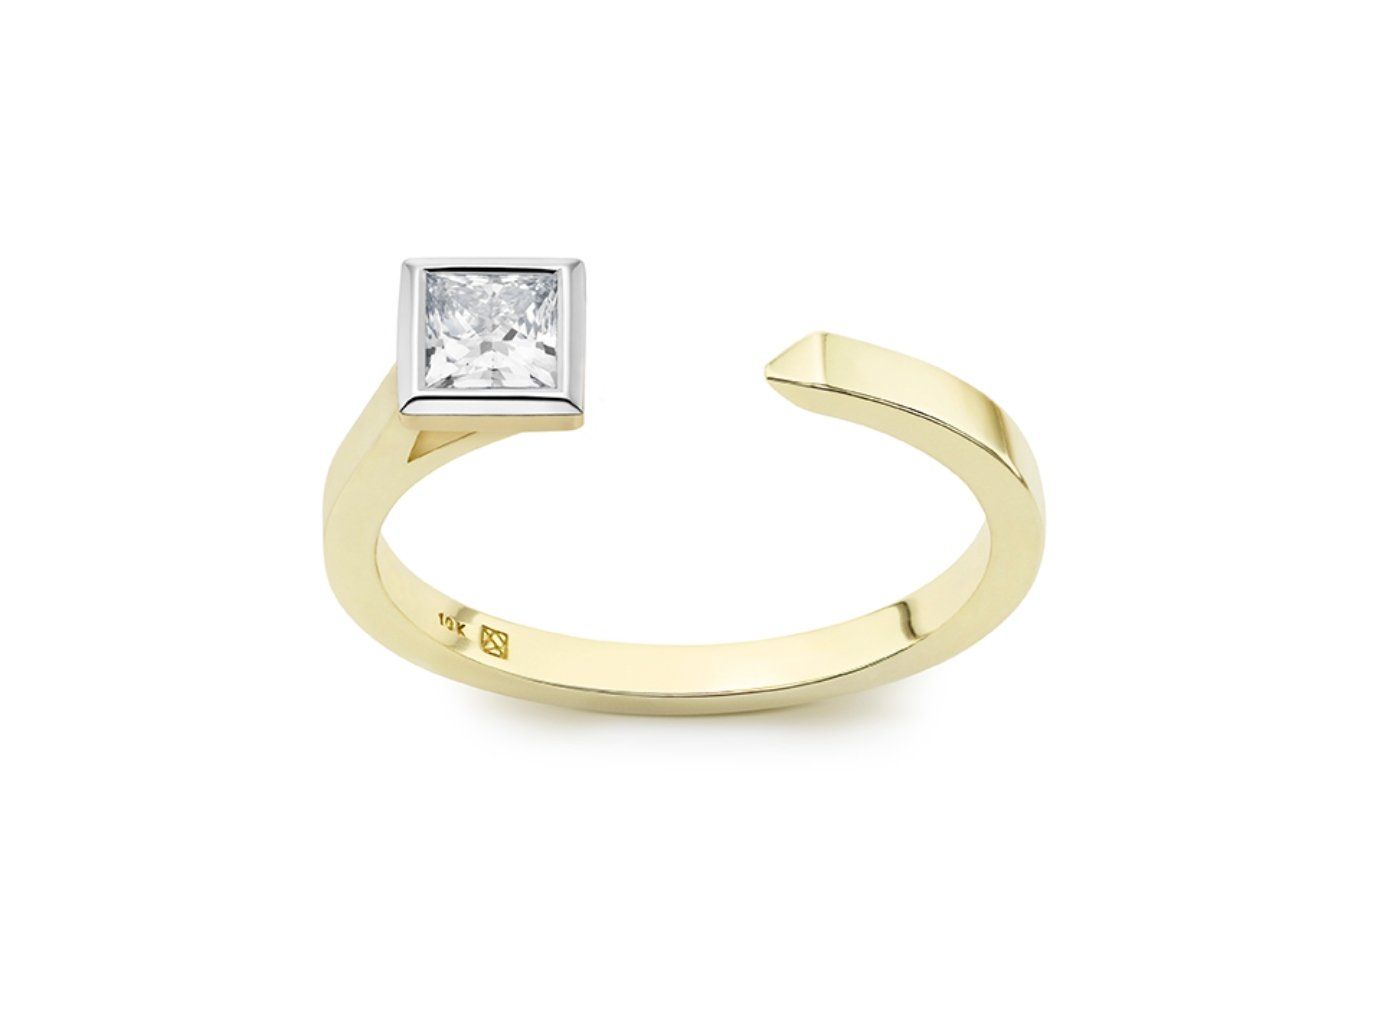 Front view of Princess open top 3/8 carat ring with white diamond